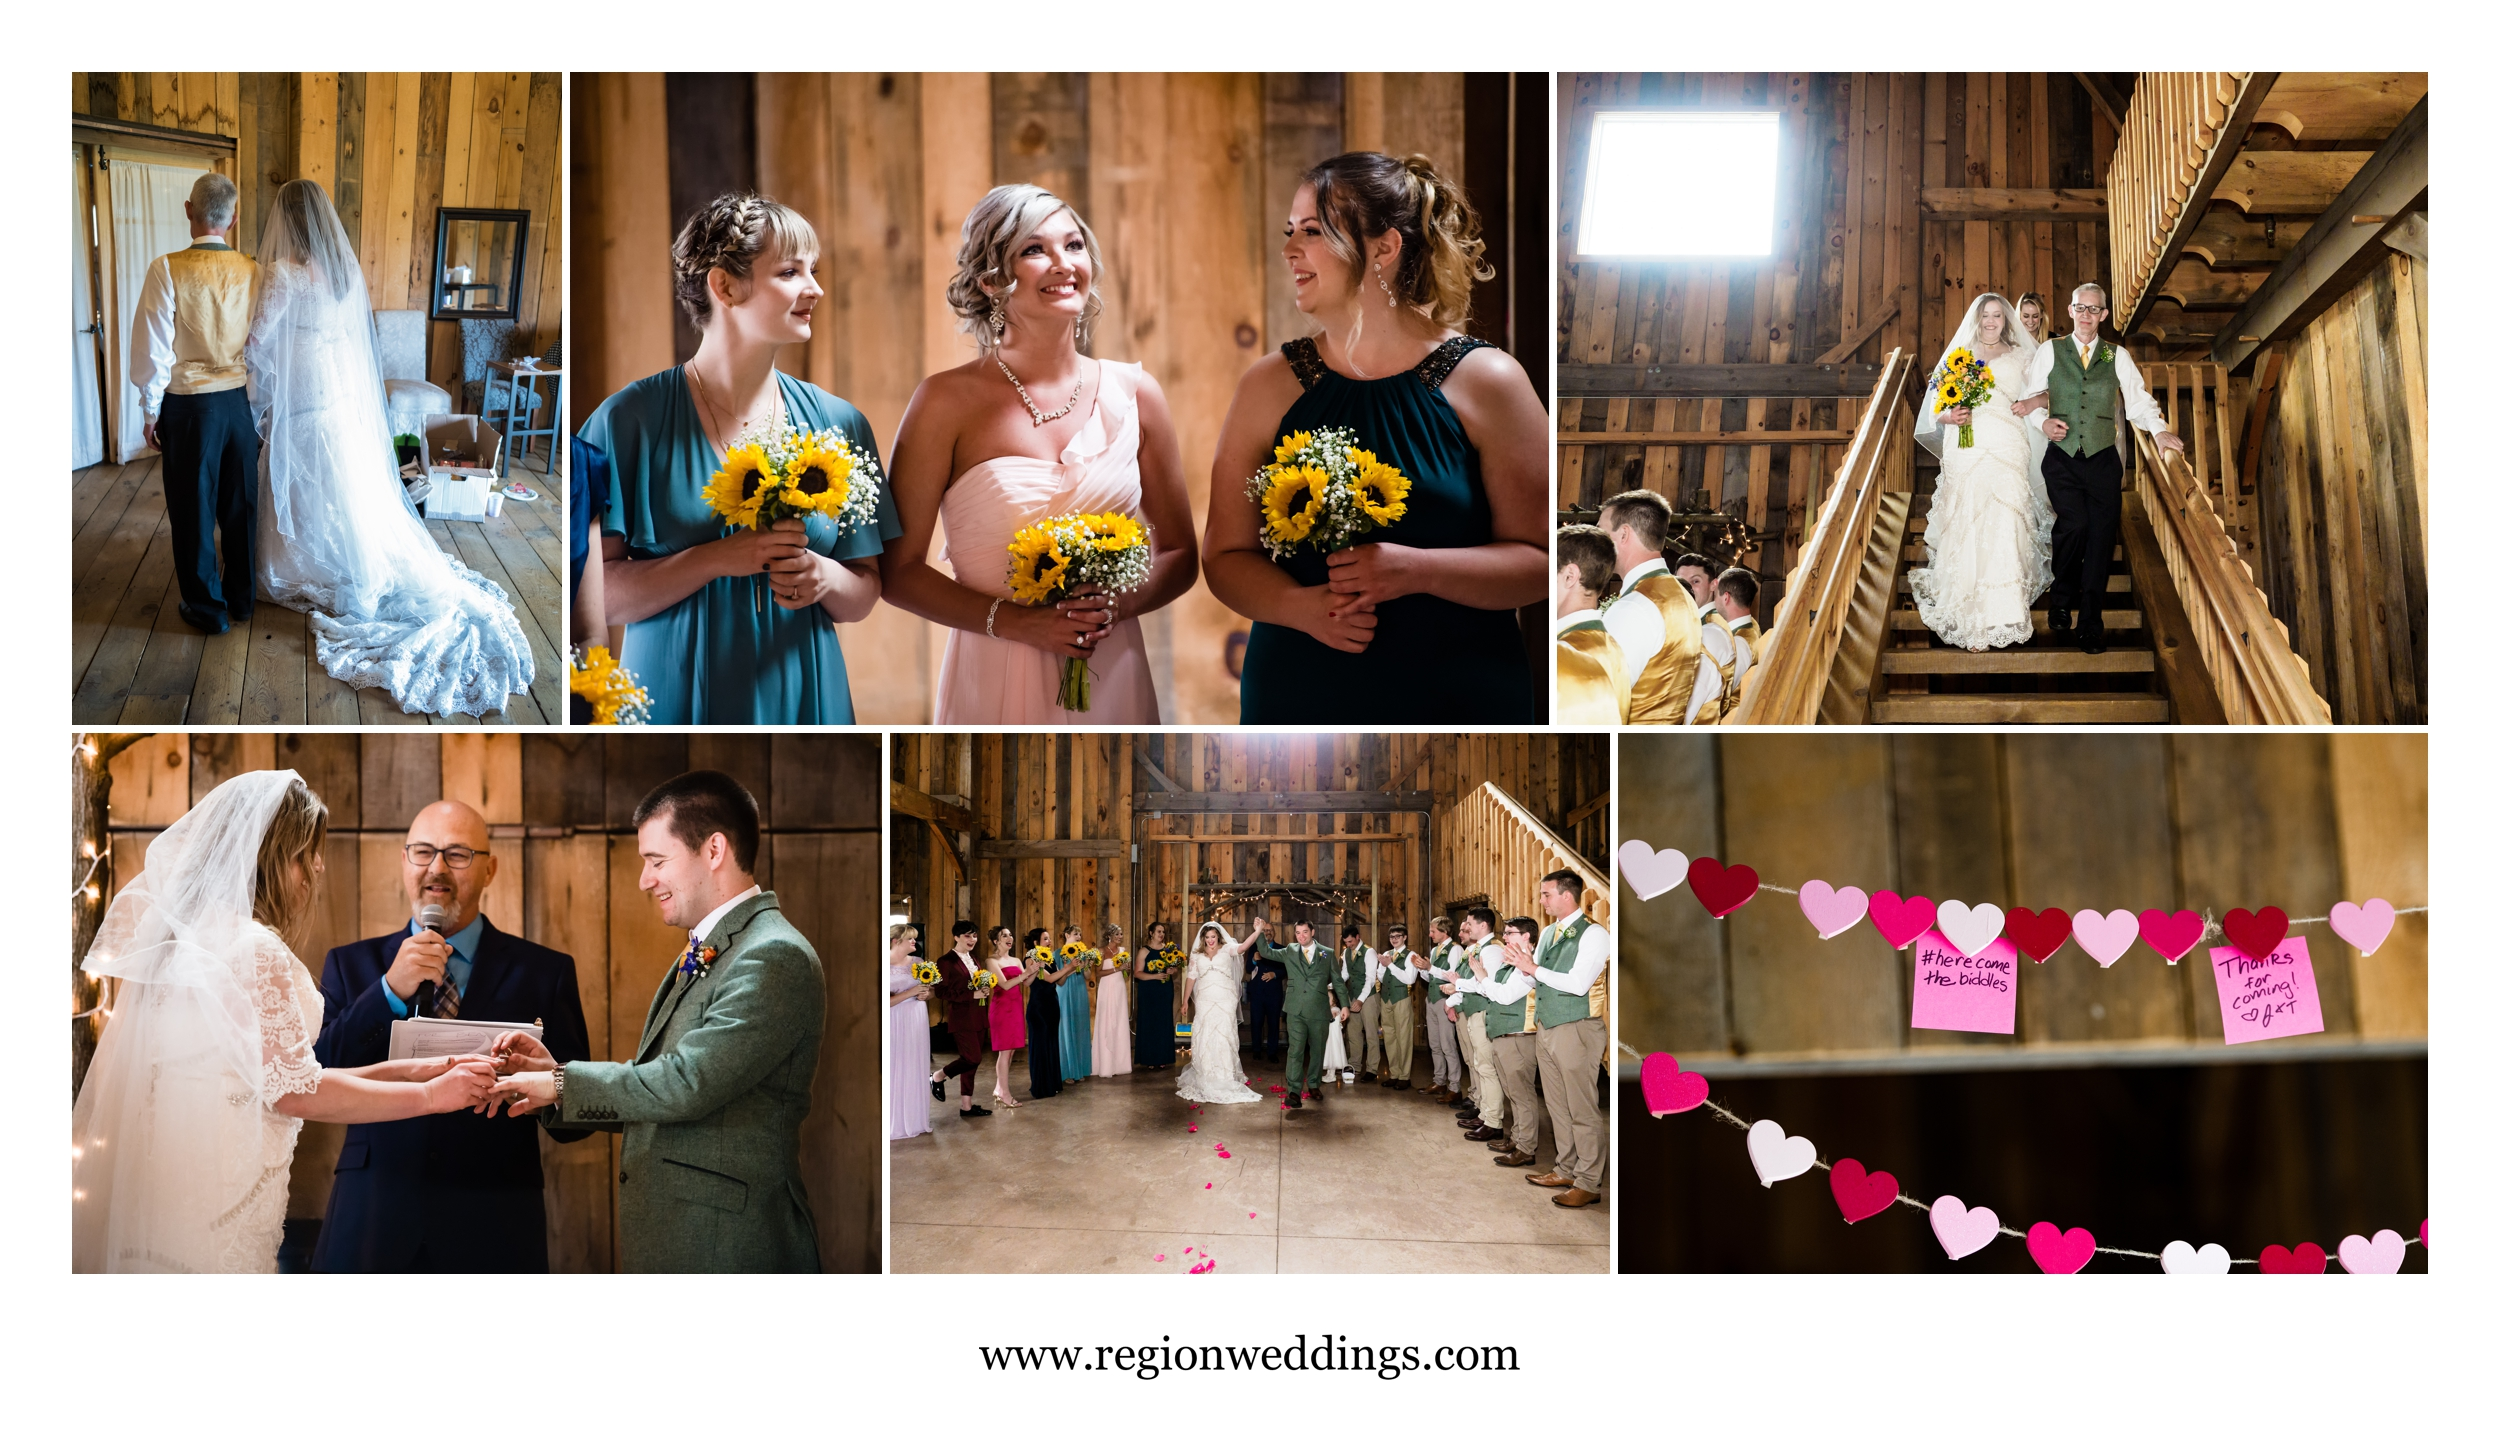 Indoor wedding ceremony at County Line Orchard.